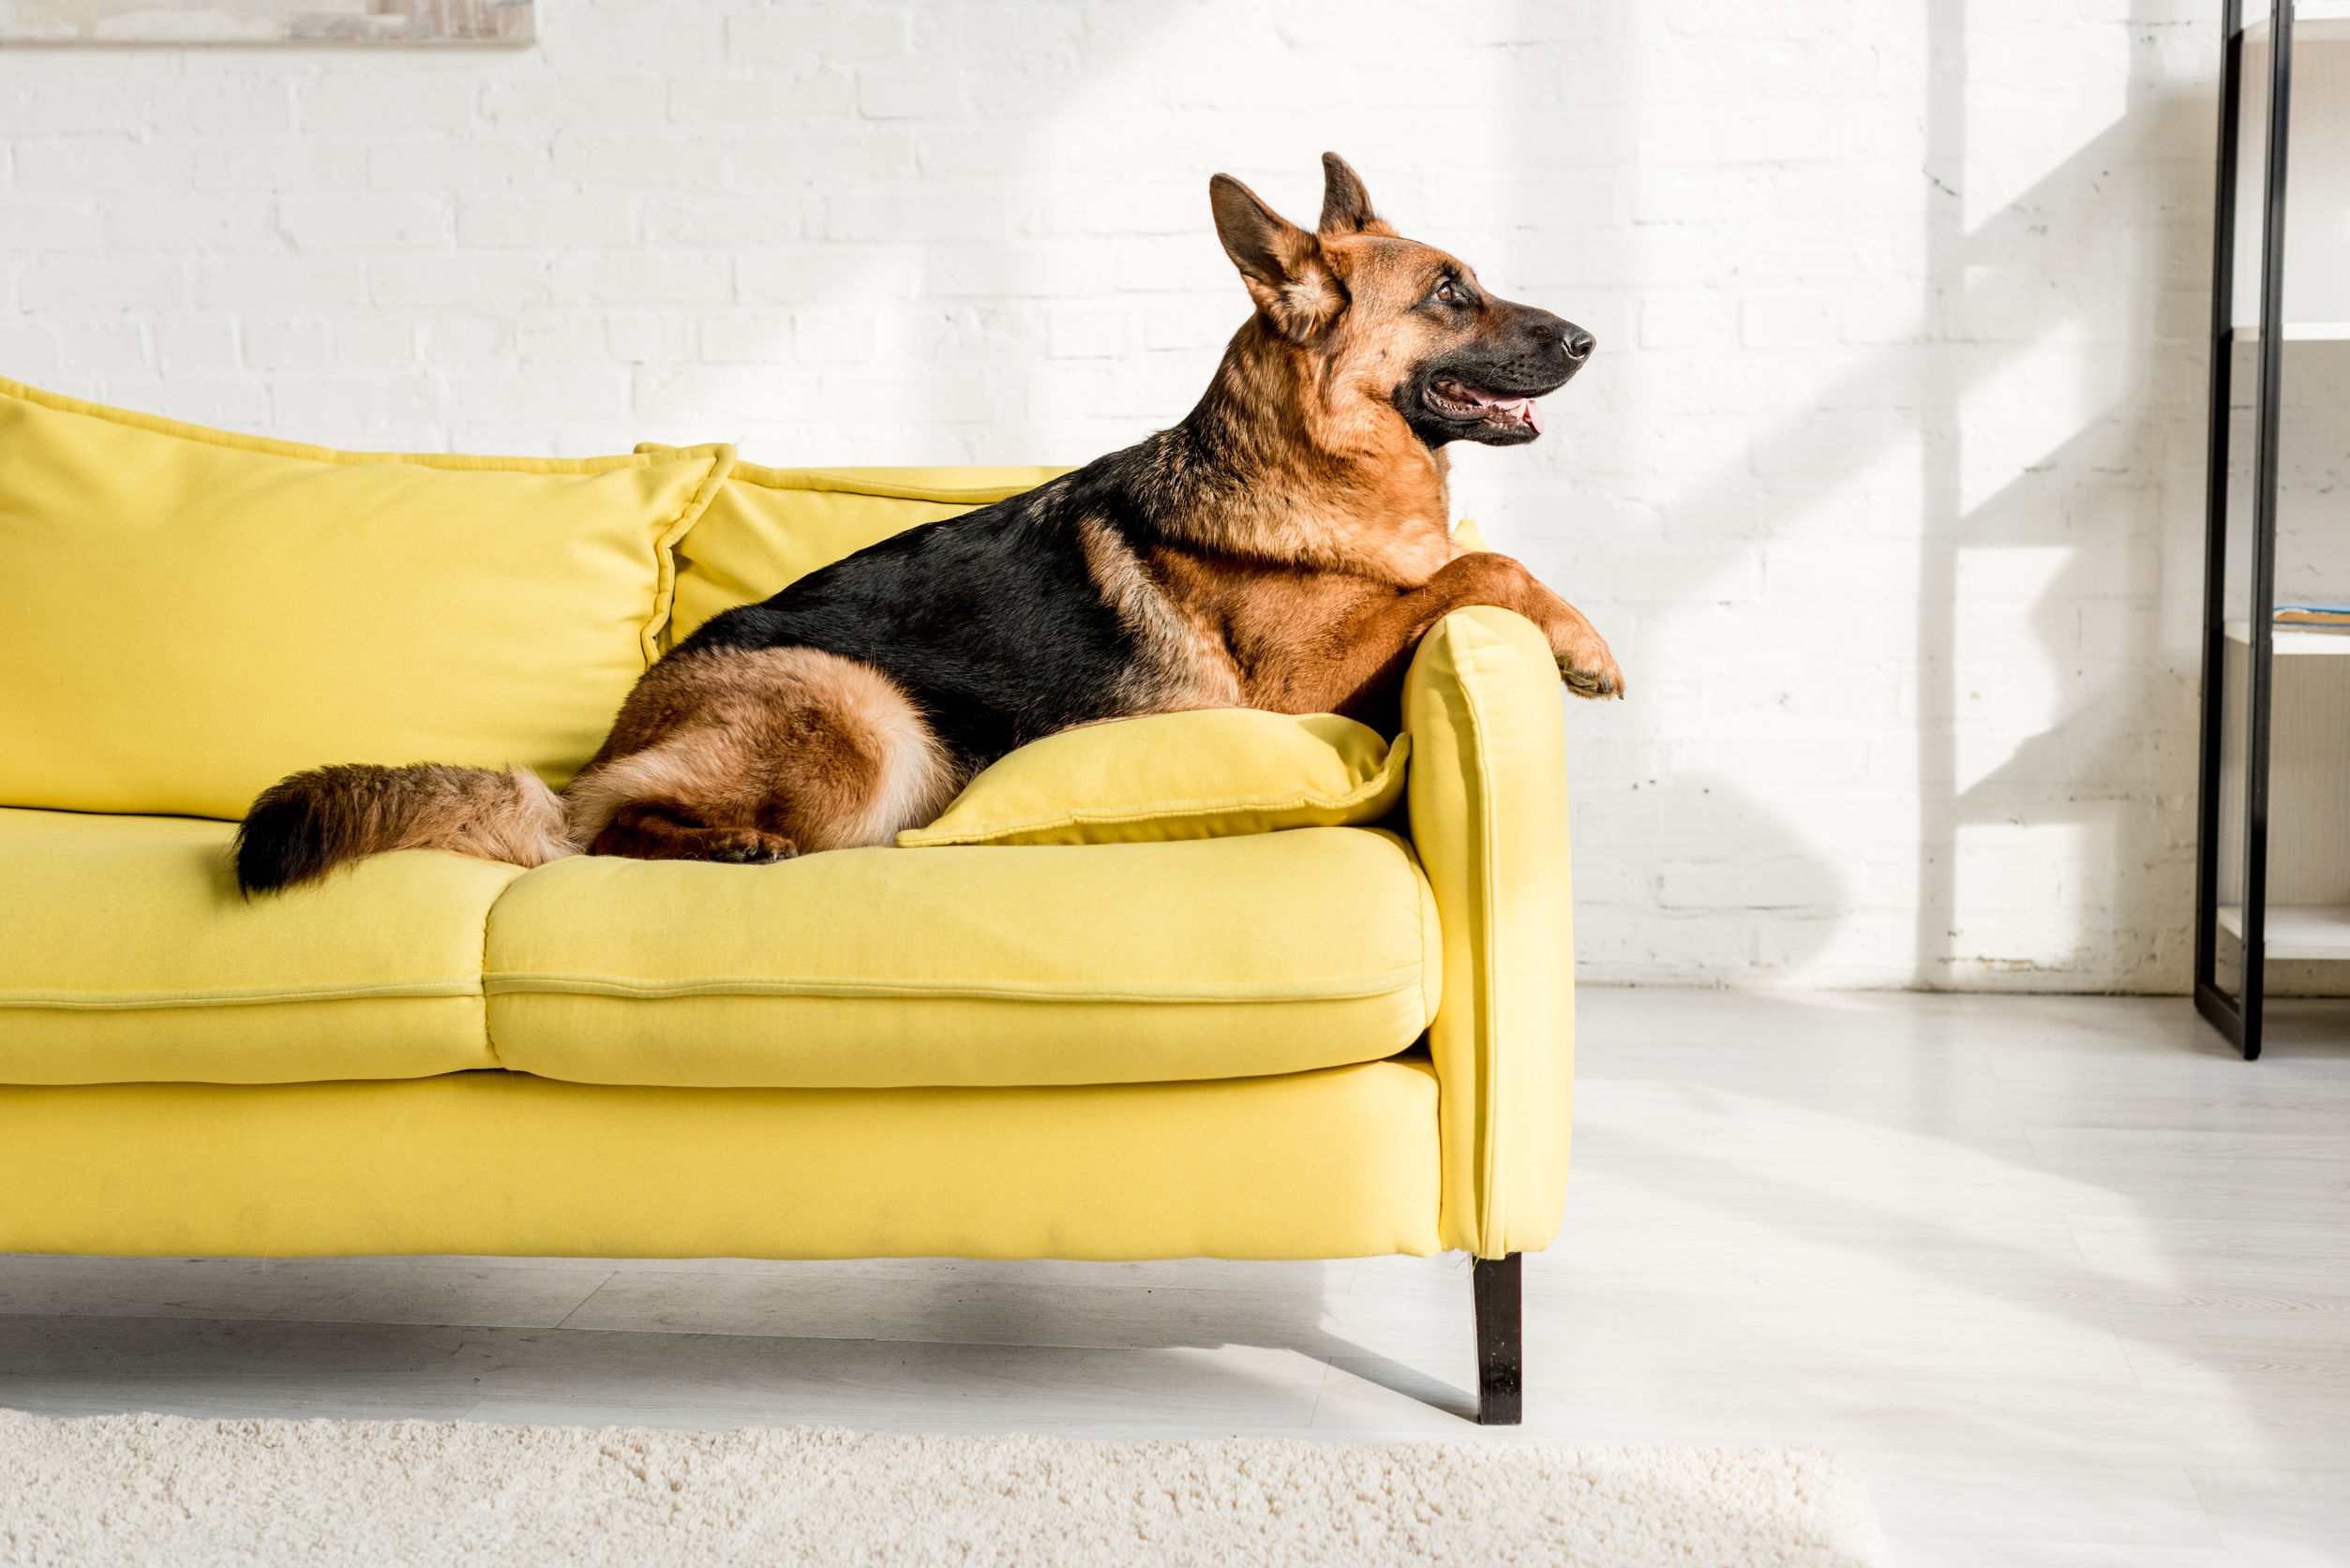 6 Tips for Raising a Dog in an Apartment